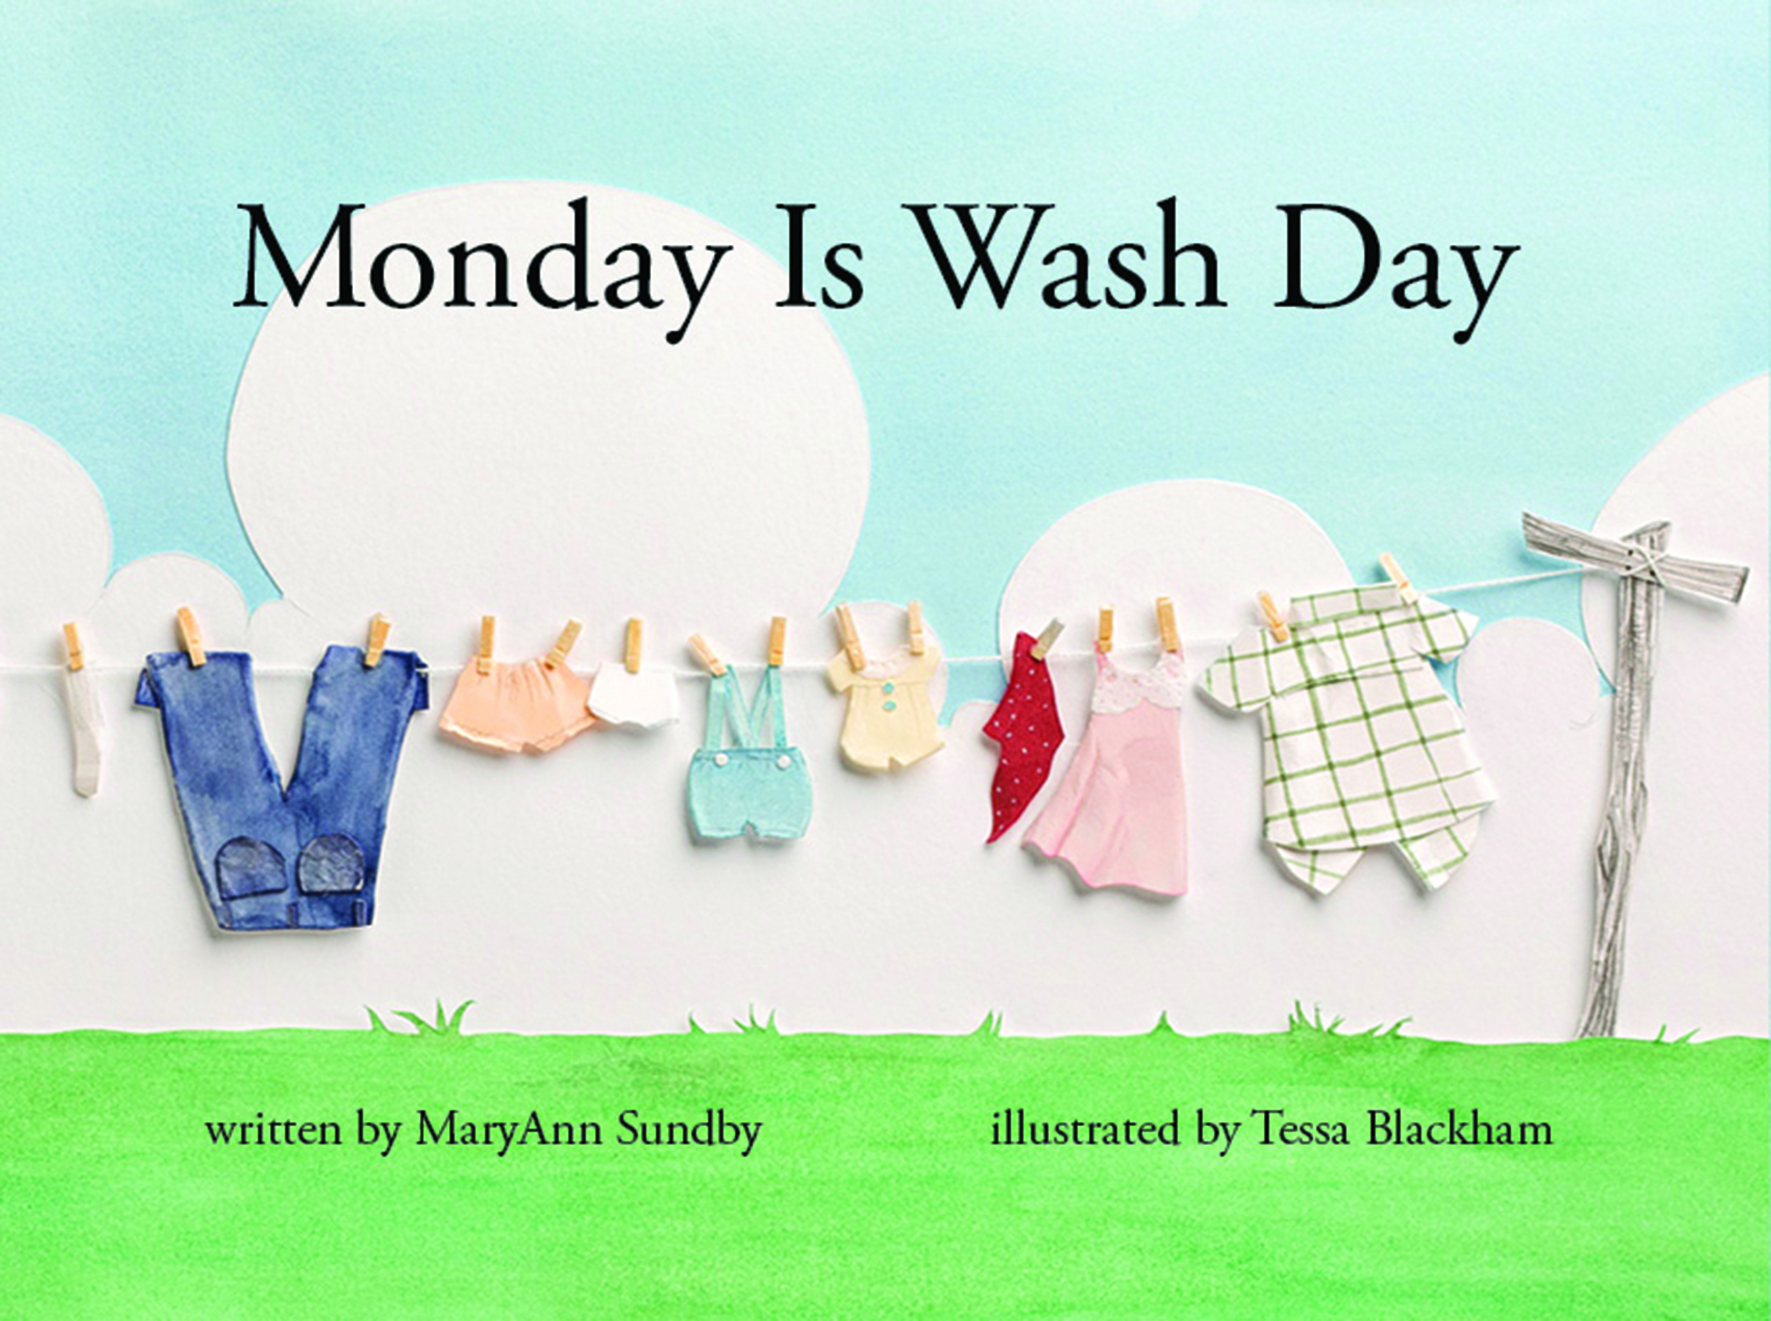 Blackham, Tessa - MONDAY IS WASH DAY - 2016_09 - PB.jpg